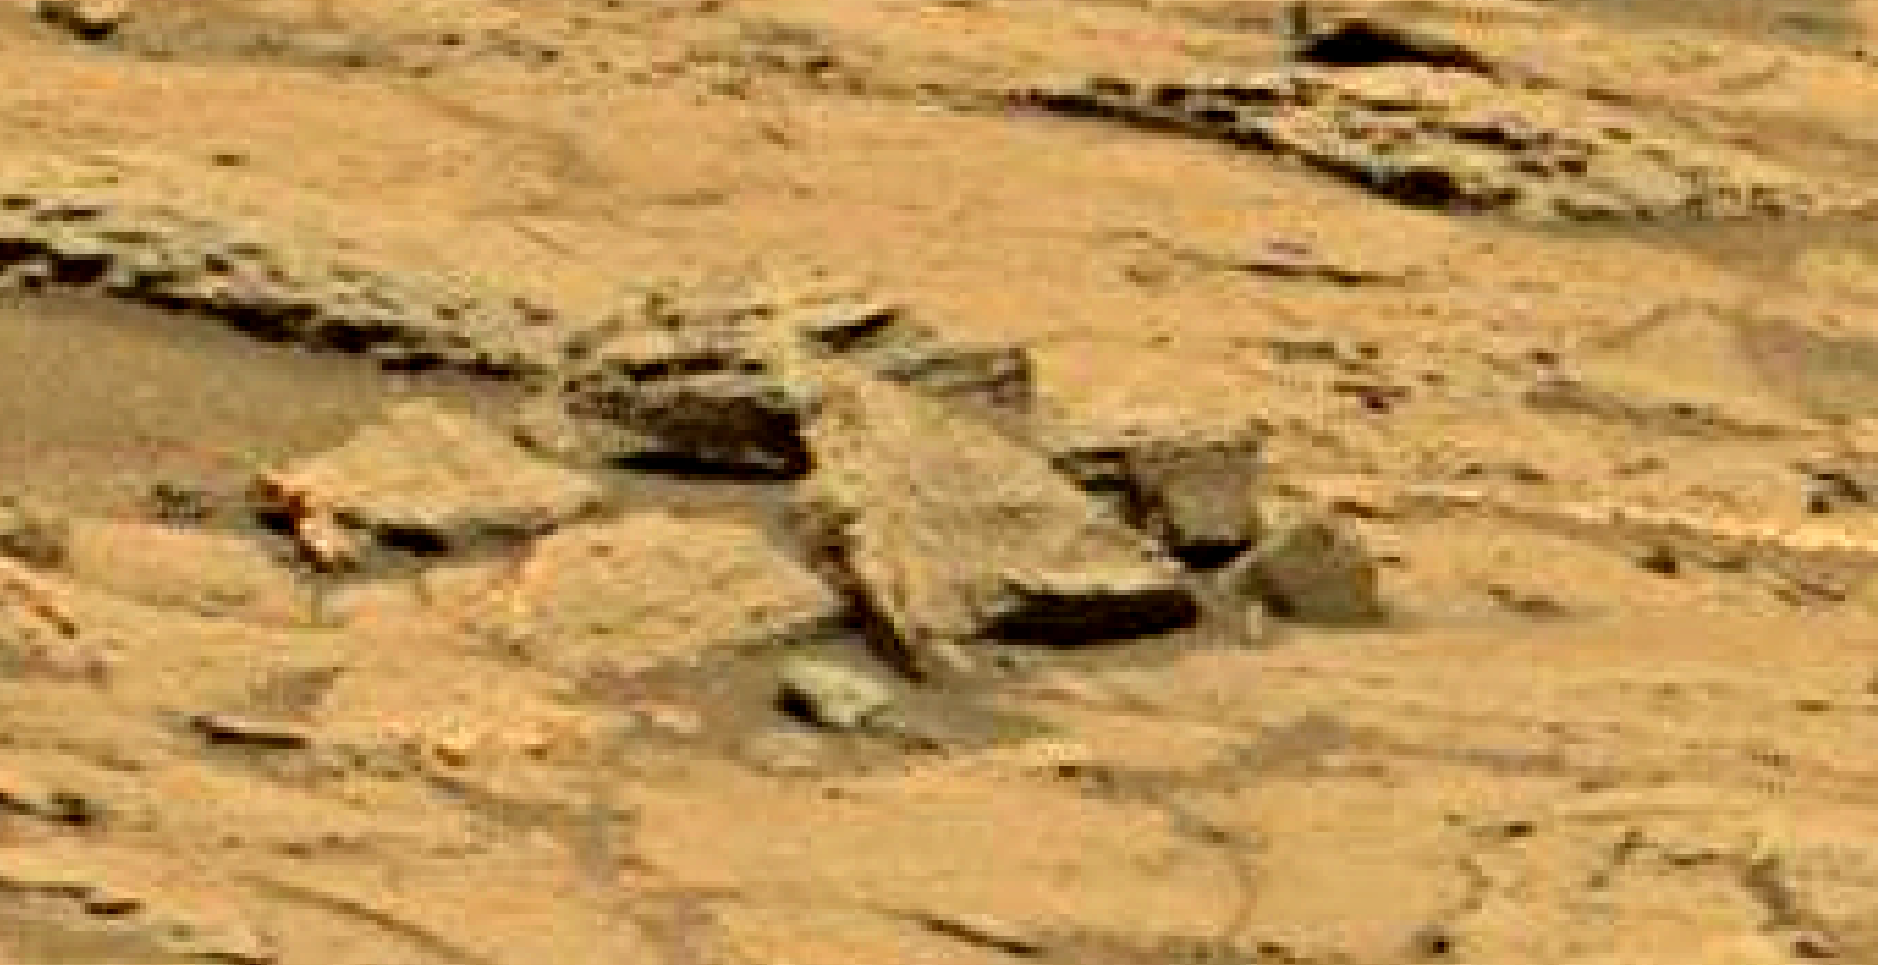 mars sol 1353 anomaly-artifacts 58a1 was life on mars